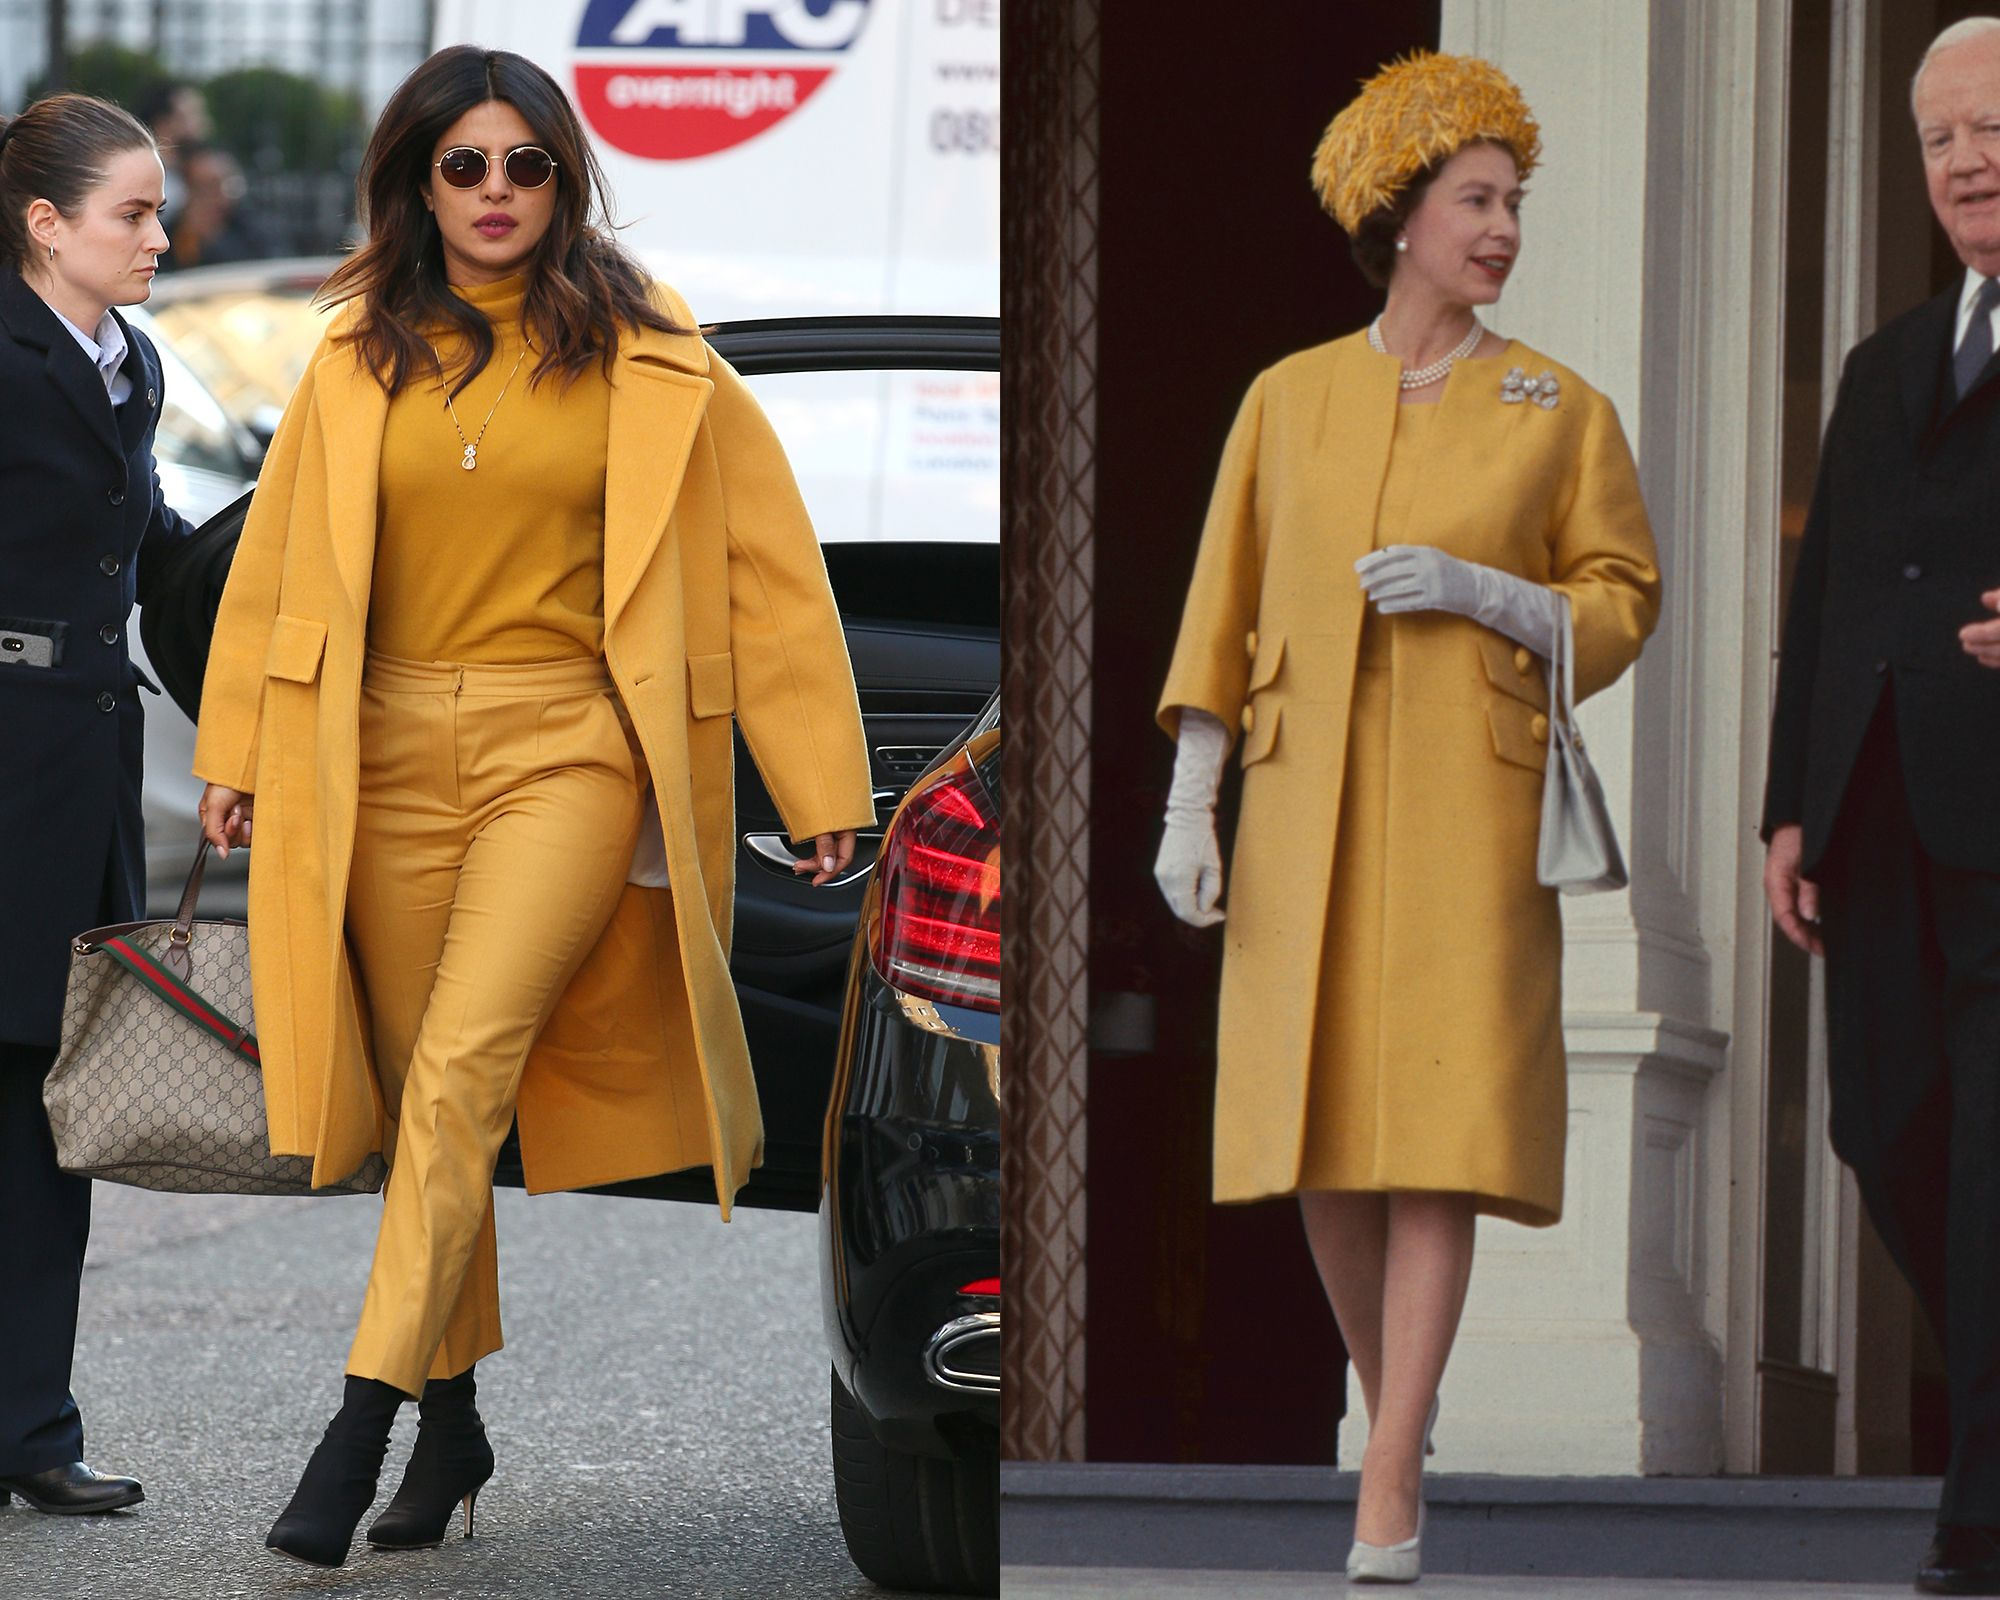 Priyanka Chopra vs. the Queen